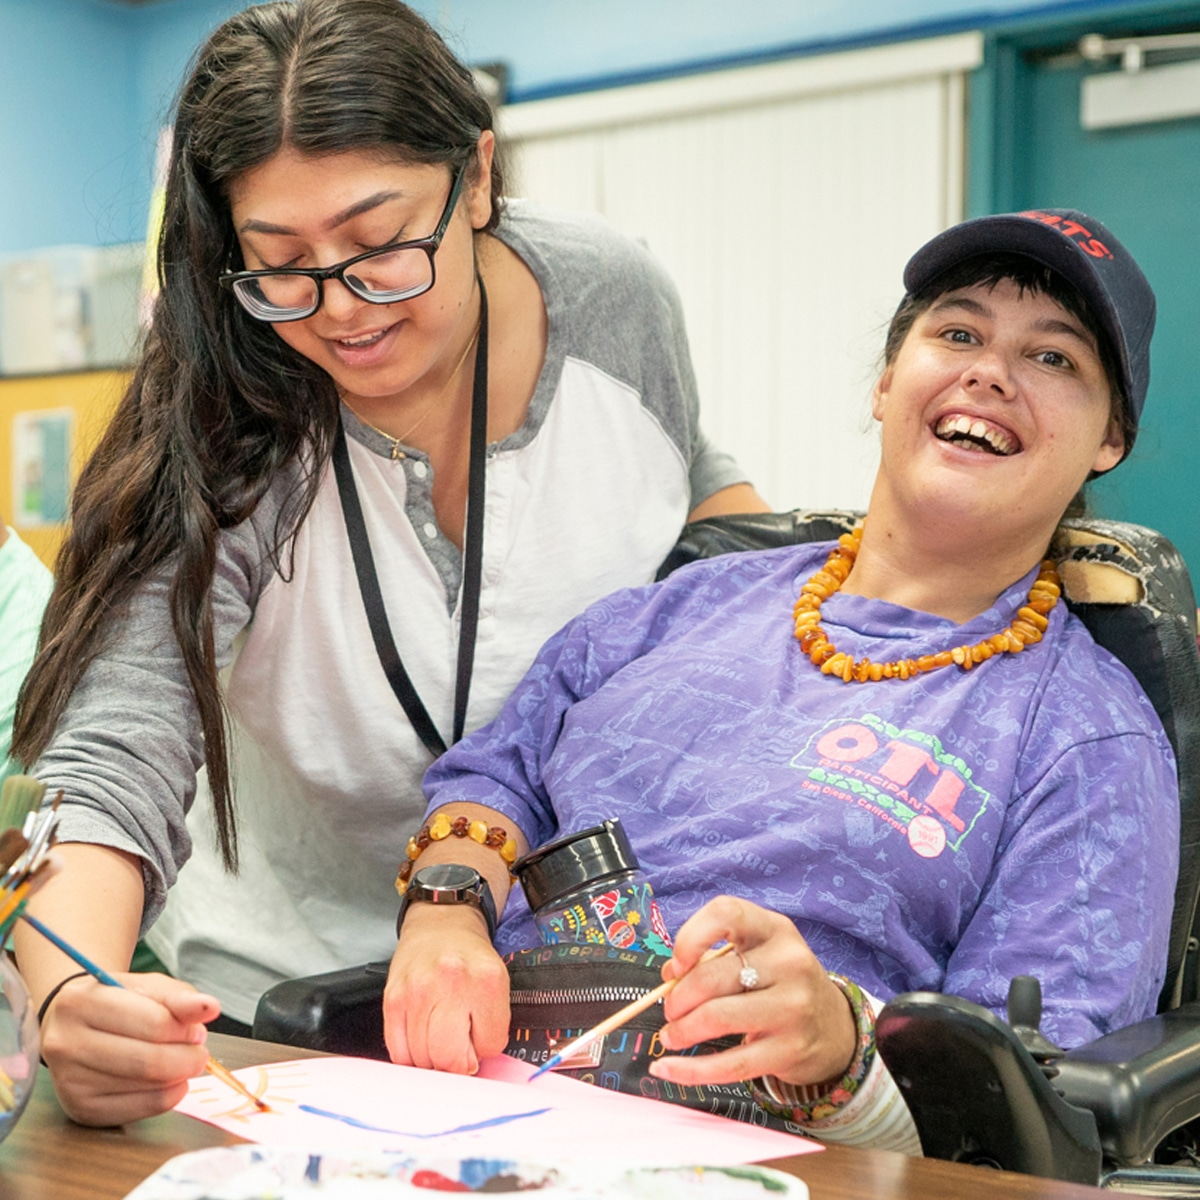 Woman assisting a disabled woman with an art project